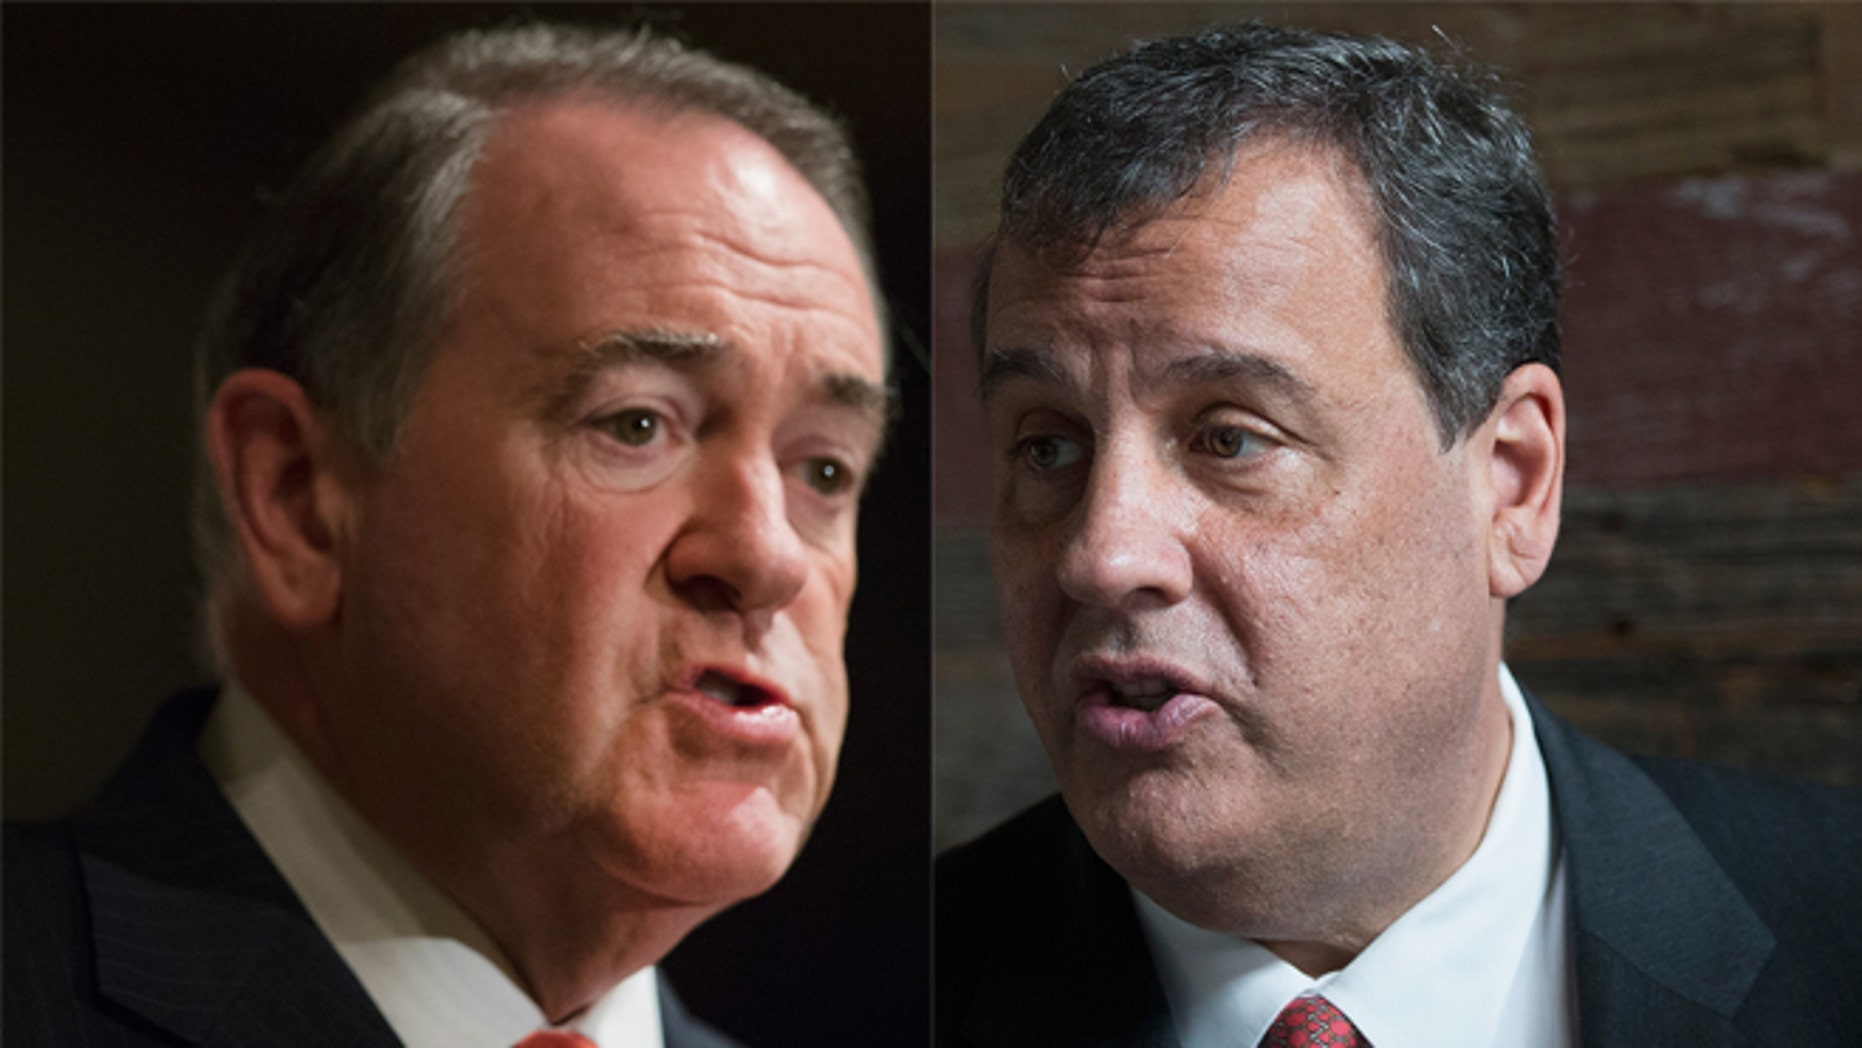 Mike Huckabee (left) and New Jersey Gov. Chris Christie. (Photos: Getty Images)